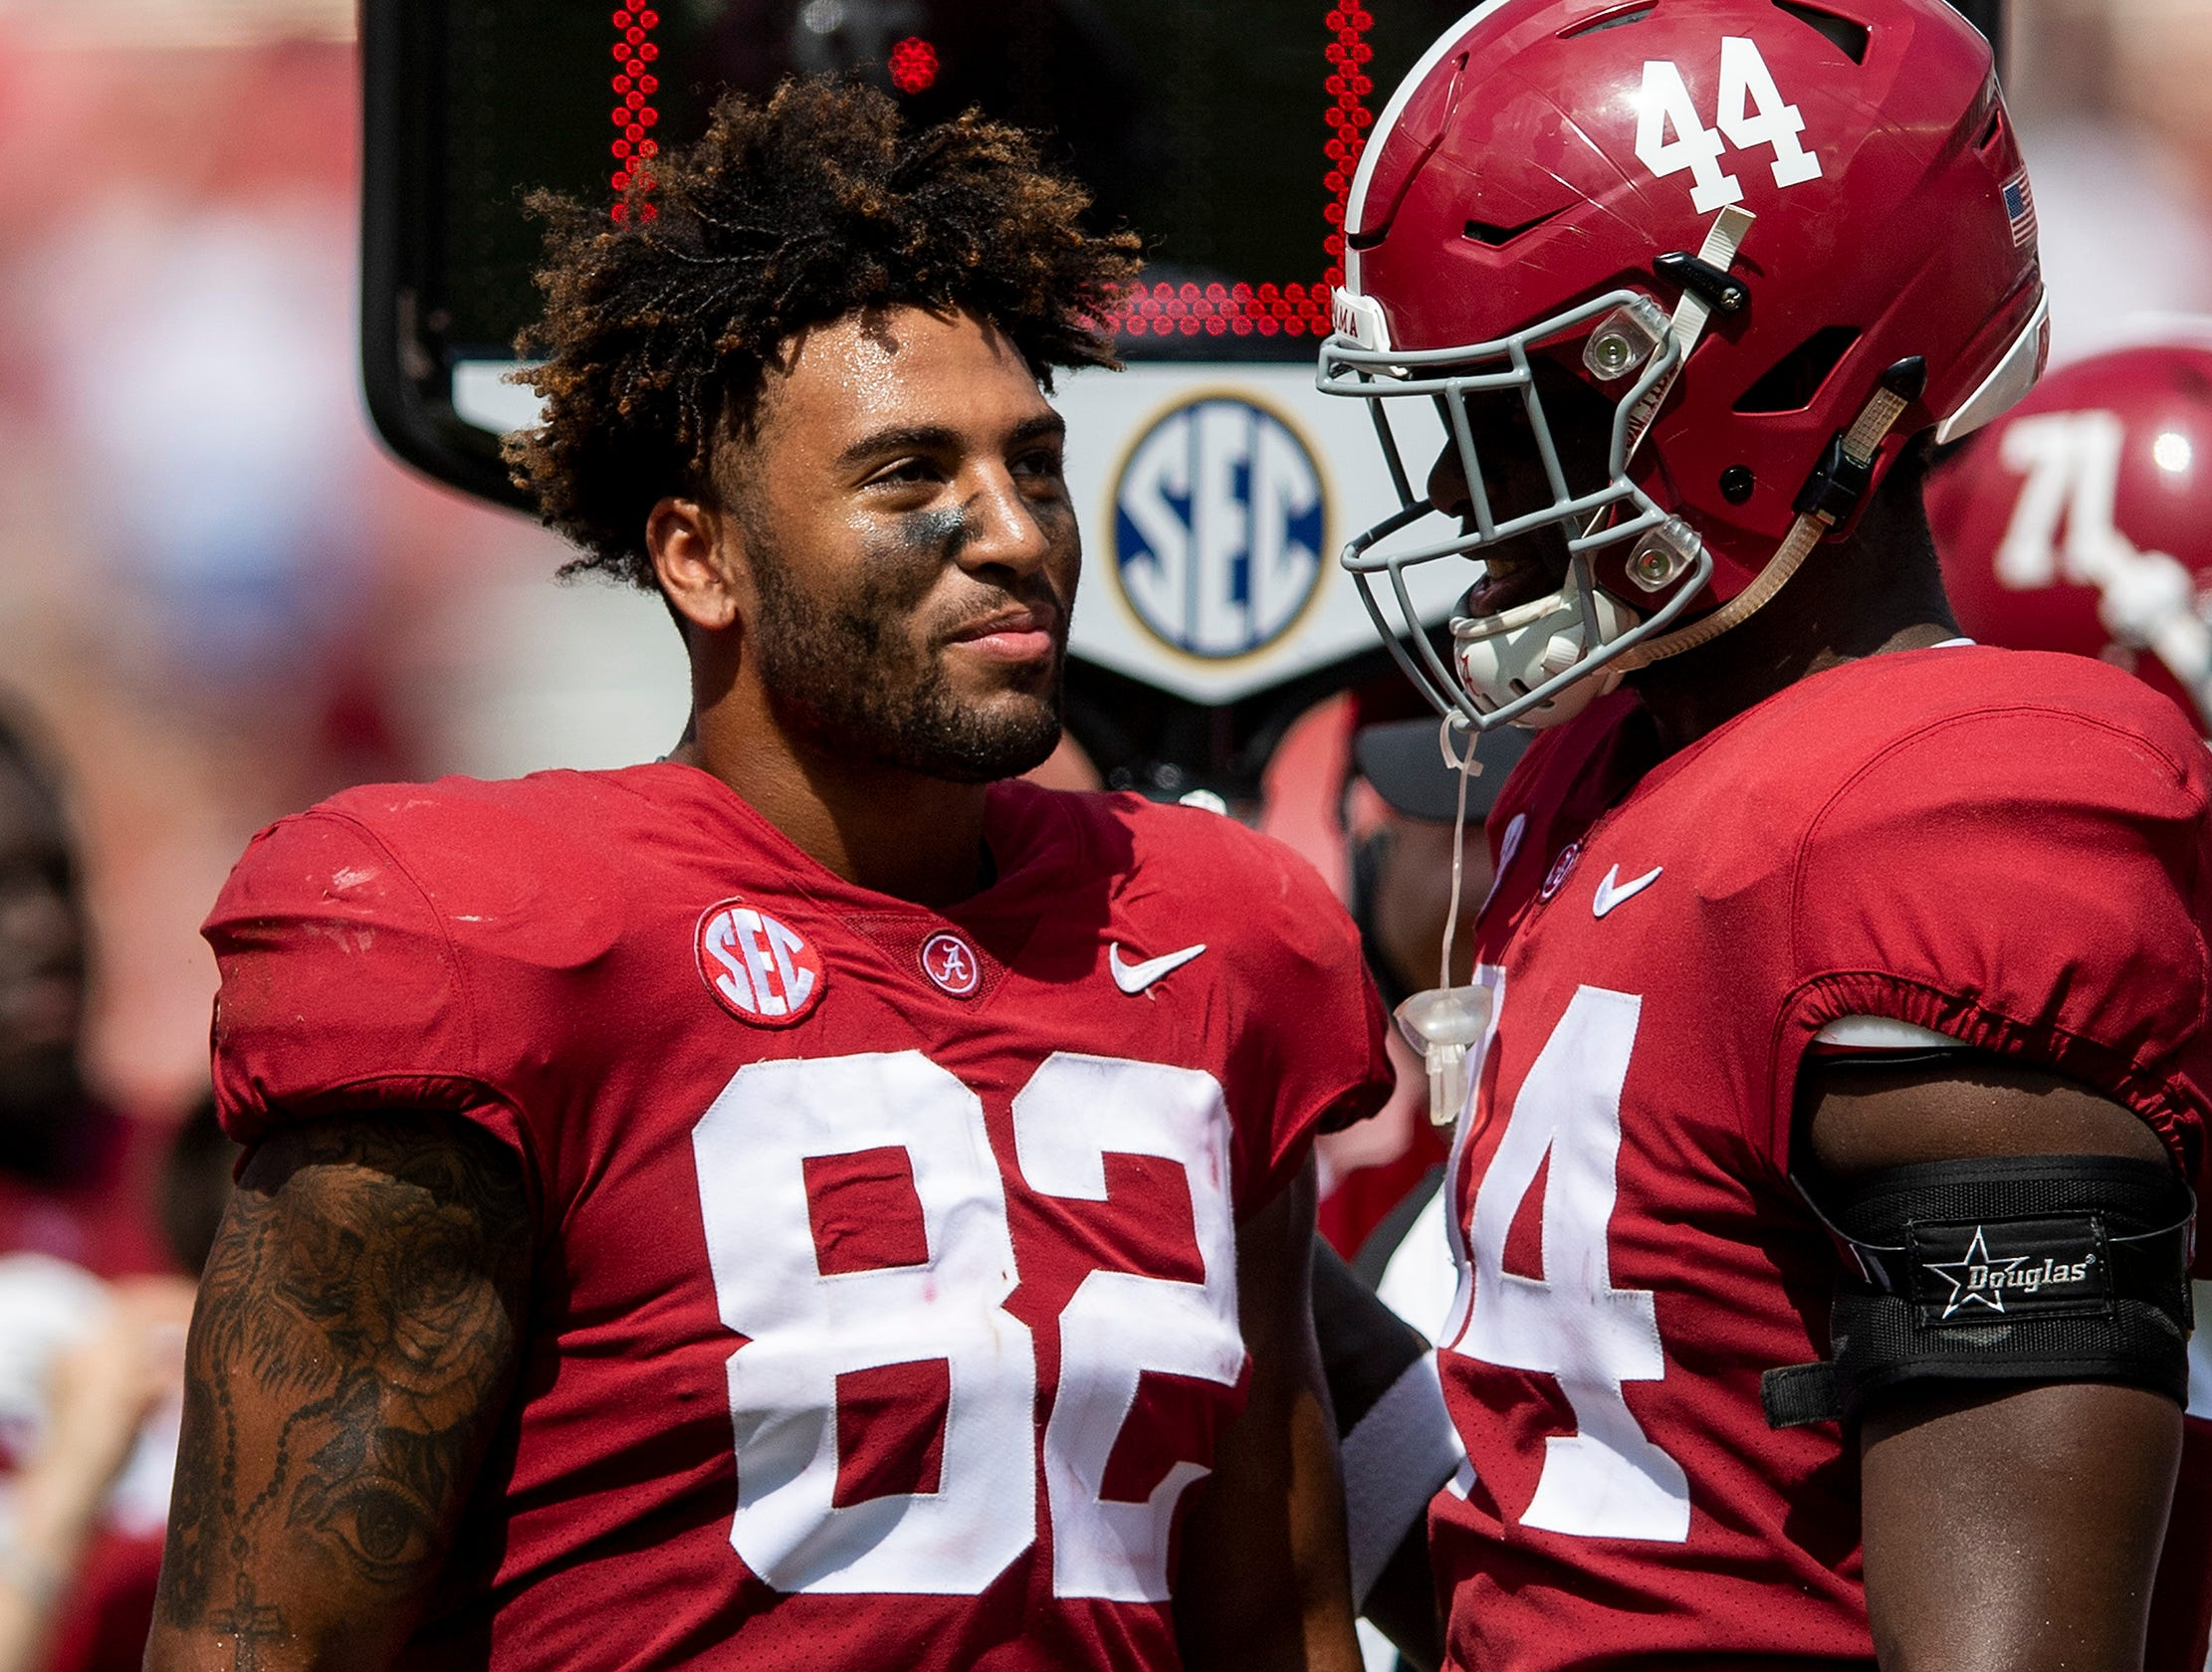 Alabama tight end Irv Smith Jr. (82) during the against Louisiana game at Bryant-Denny Stadium in Tuscaloosa, Ala., on Saturday September 29, 2018.